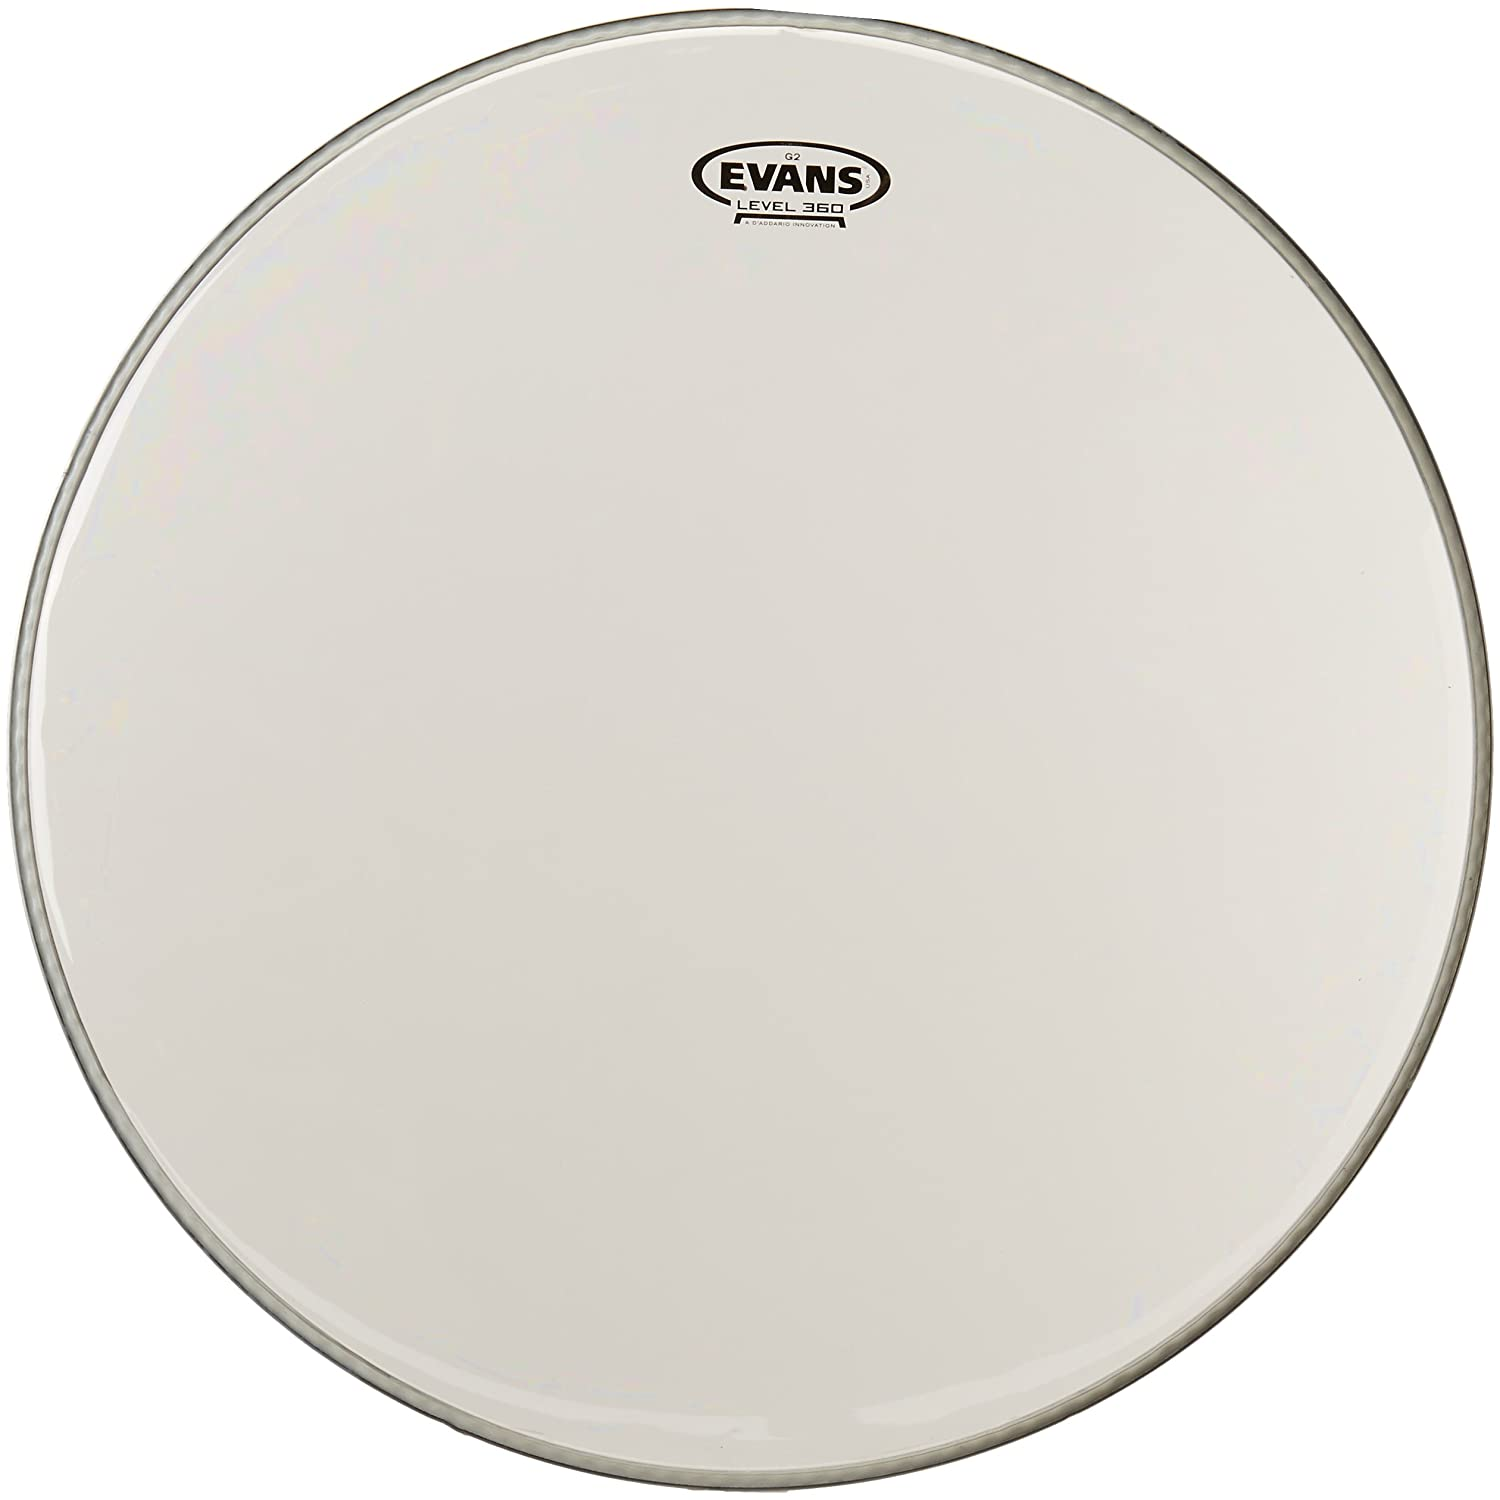 Evans G2 Coated Drum Head, 14 Inch - B14G2 Evans Heads